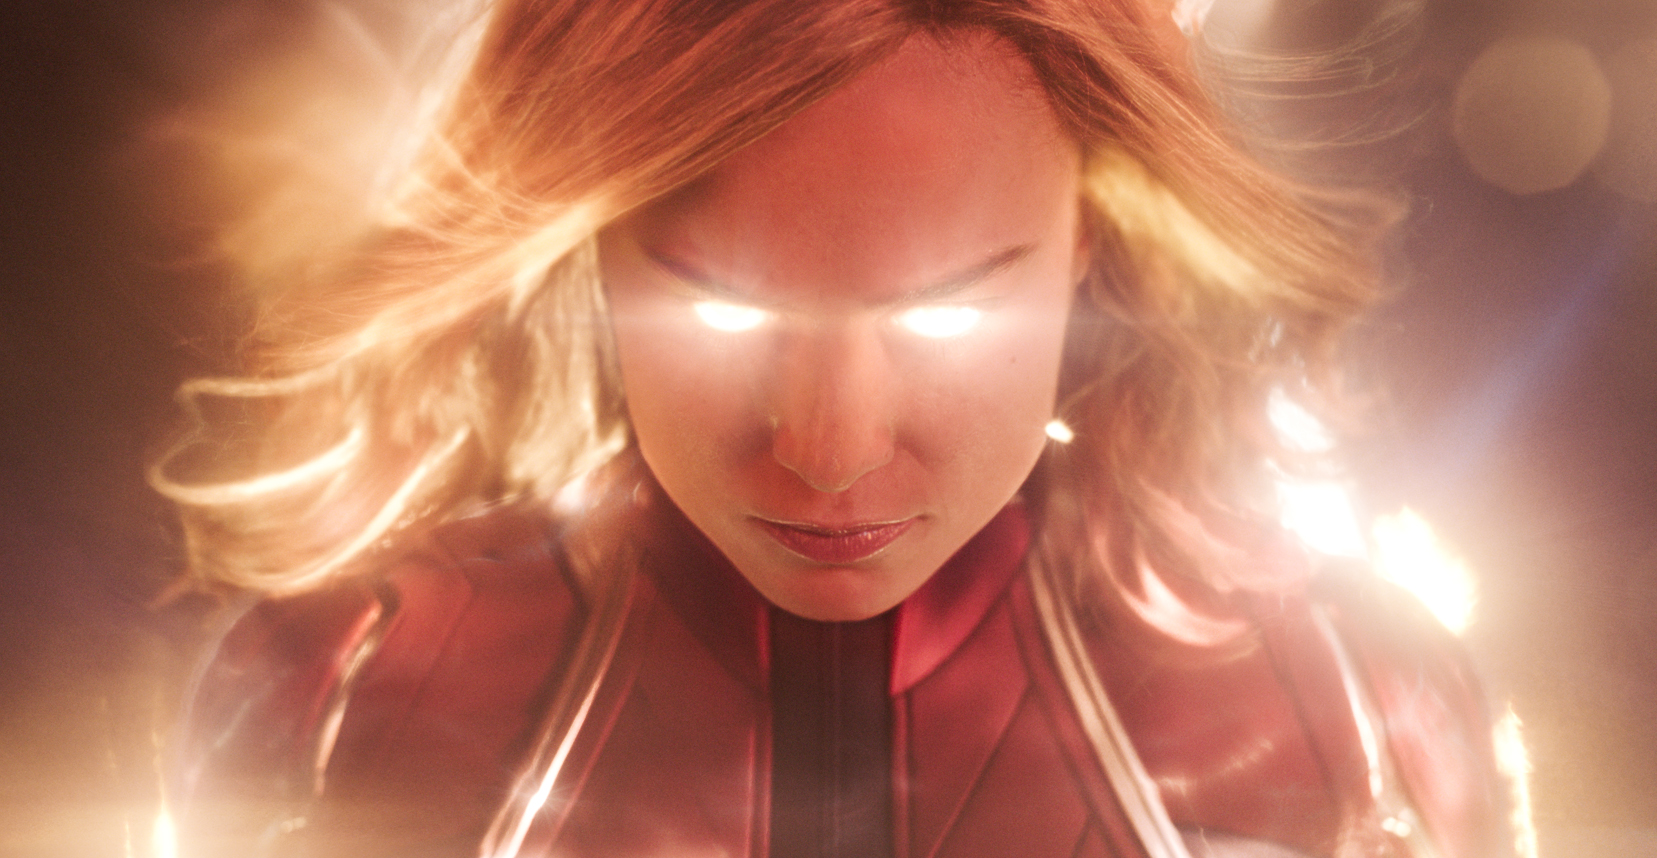 Brie Larson as Captain Marvel: You wouldn't like her when she's angry.